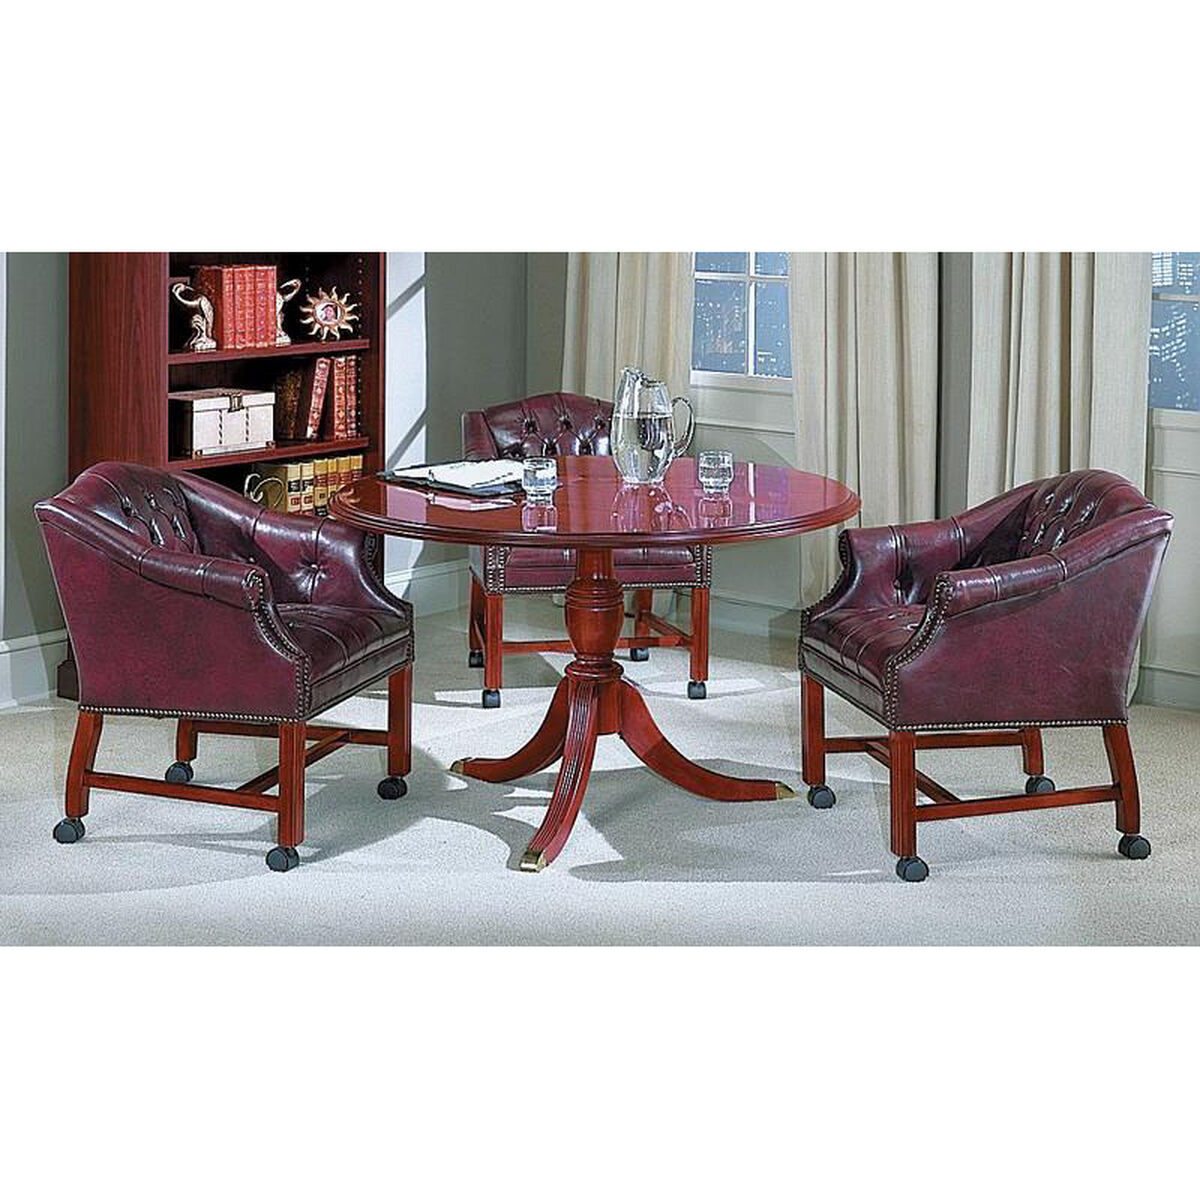 Round Conference Table TRTR Bizchaircom - Round pedestal conference table